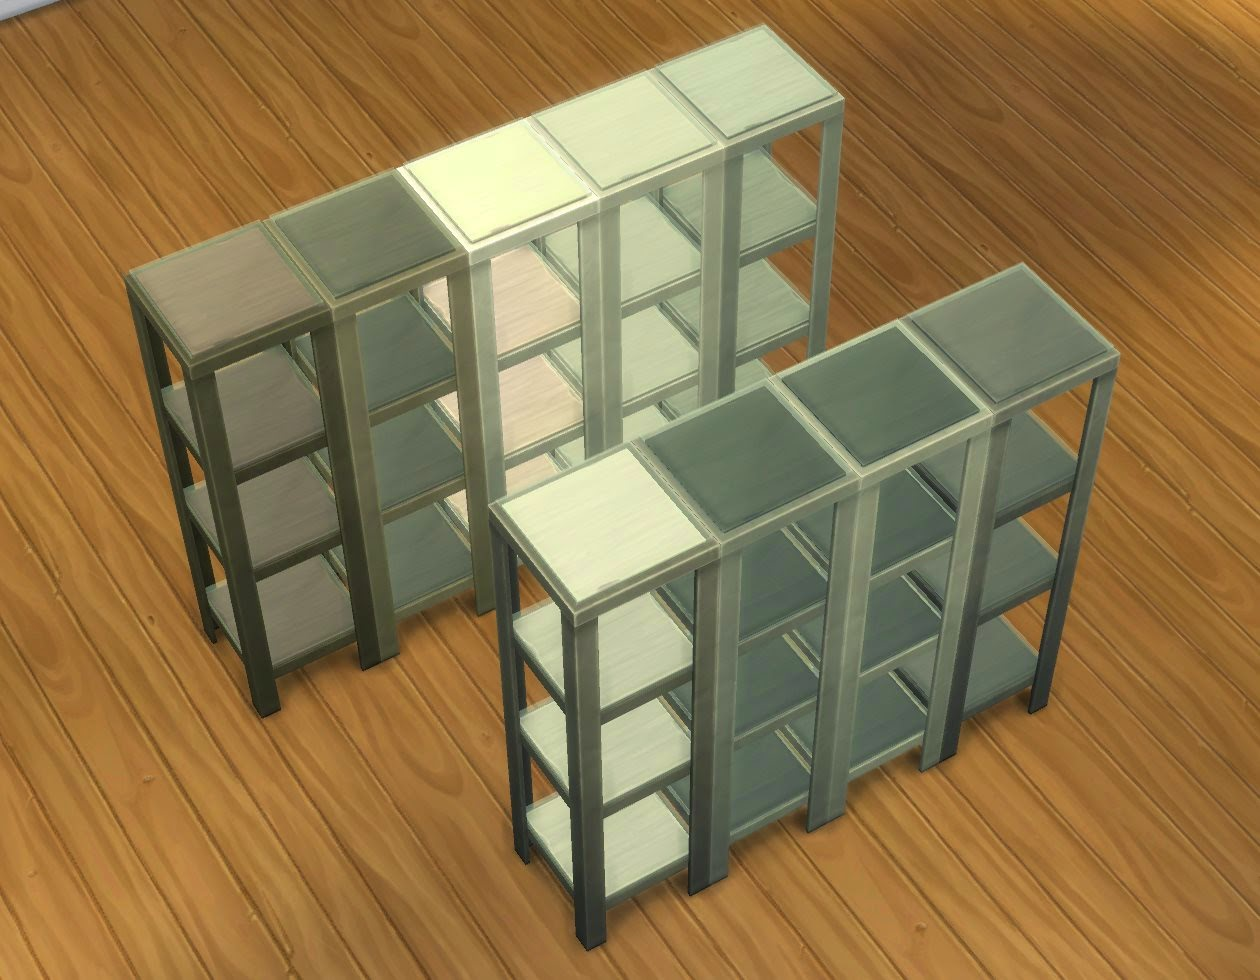 Very Impressive portraiture of My Sims 4 Blog: RAW Shelves by plasticbox with #744F27 color and 1260x980 pixels